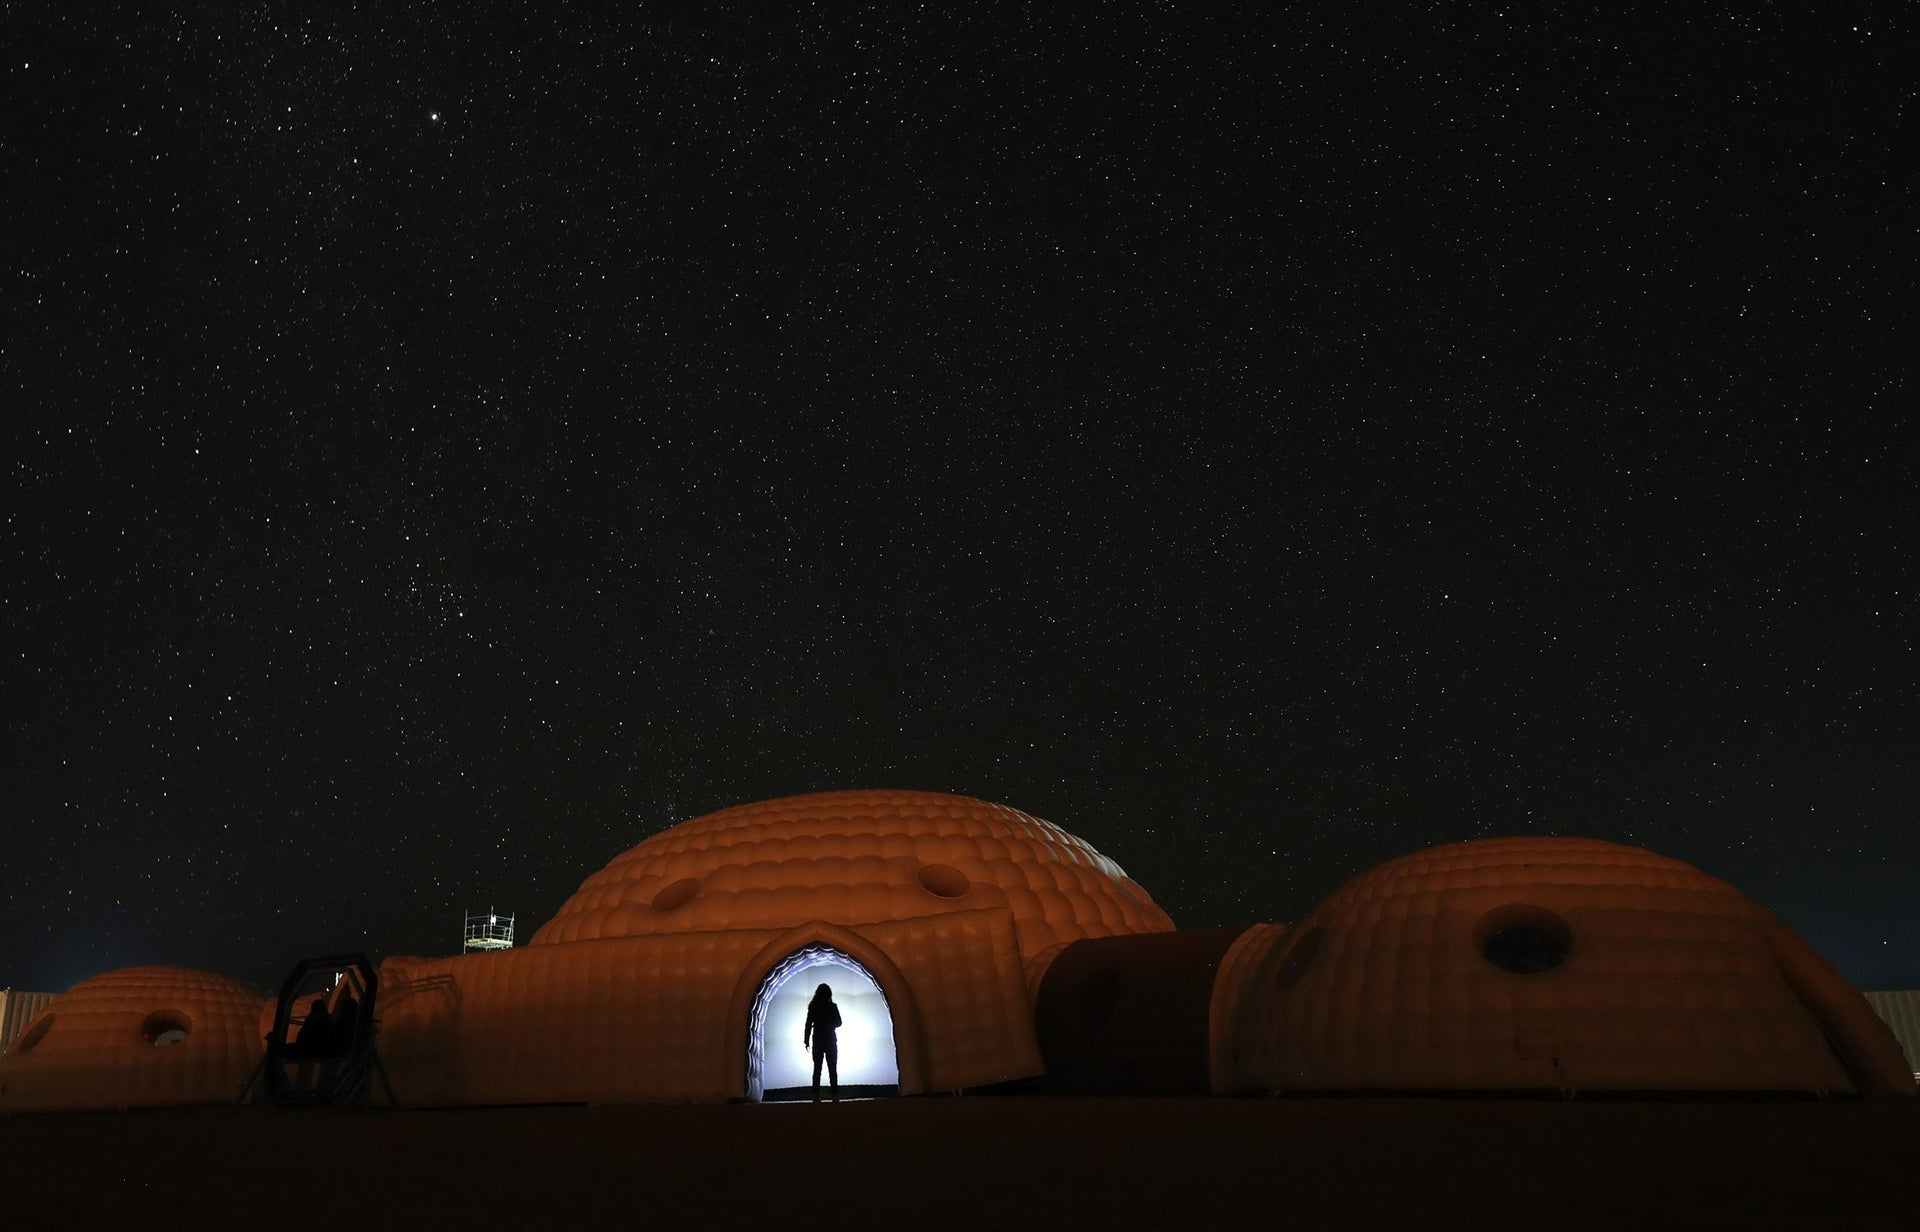 A member of the AMADEE-18 Mars simulation mission in the doorway of a simulation habitat in Oman's Dhofar desert. February 7, 2018.